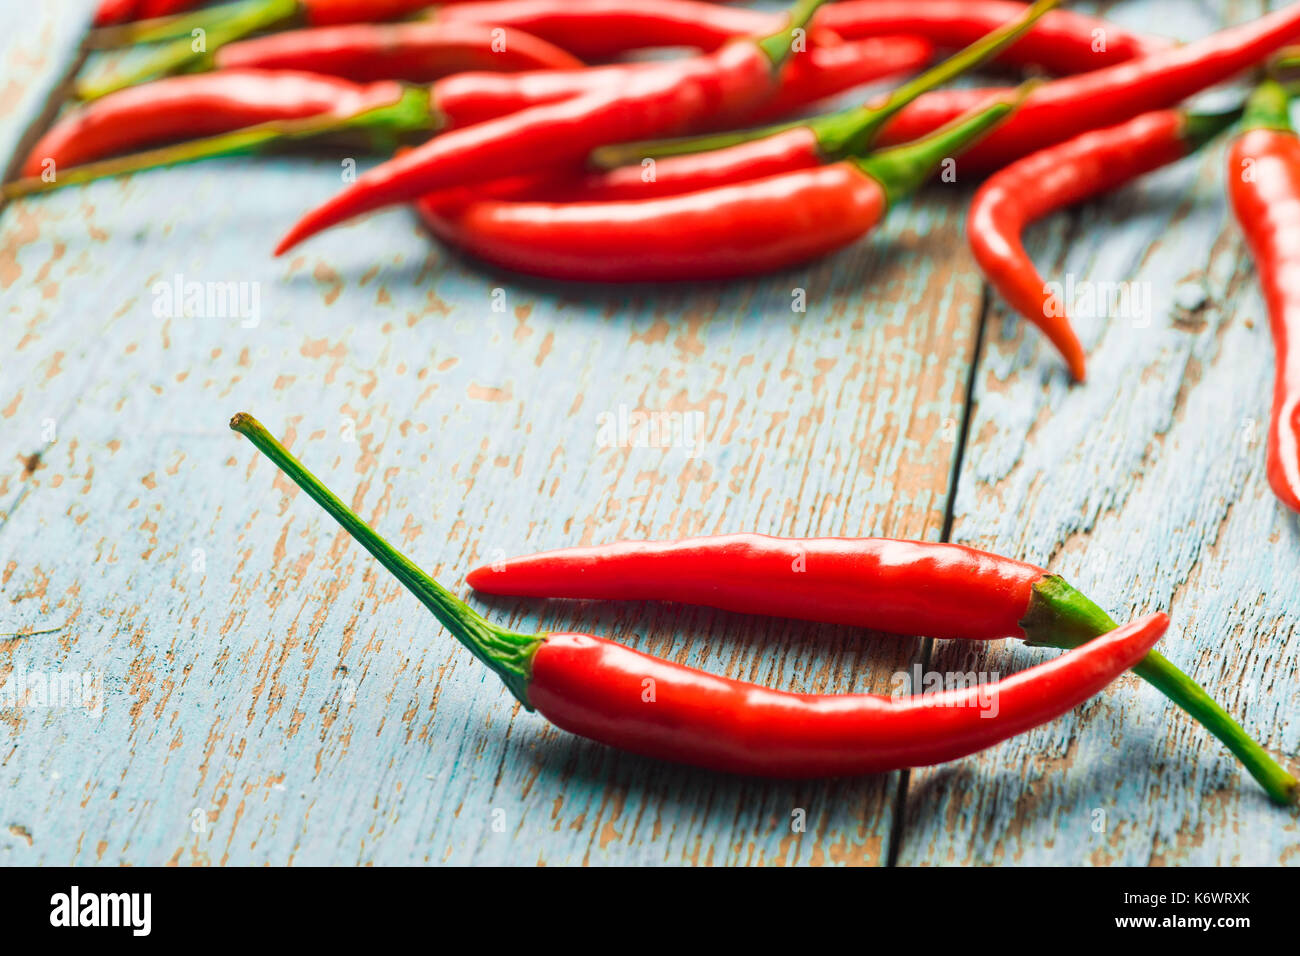 Hot red chili pepper  on a old blue color wooden table with place copy space for text. - Stock Image